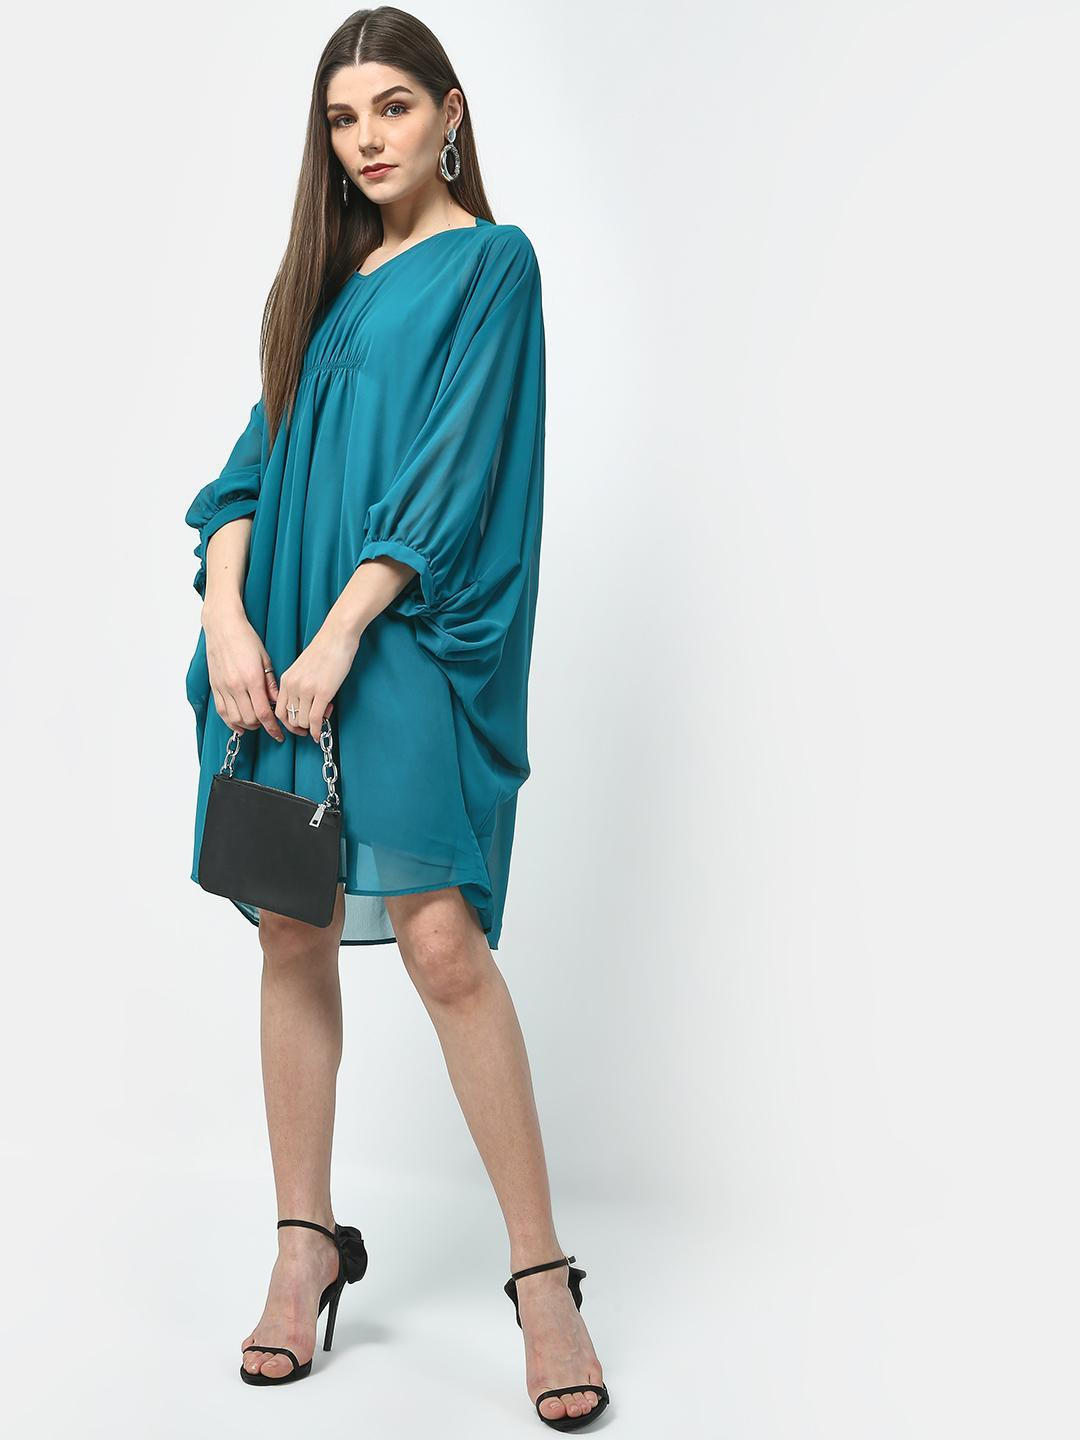 Turquoise Cinched Waist Dress